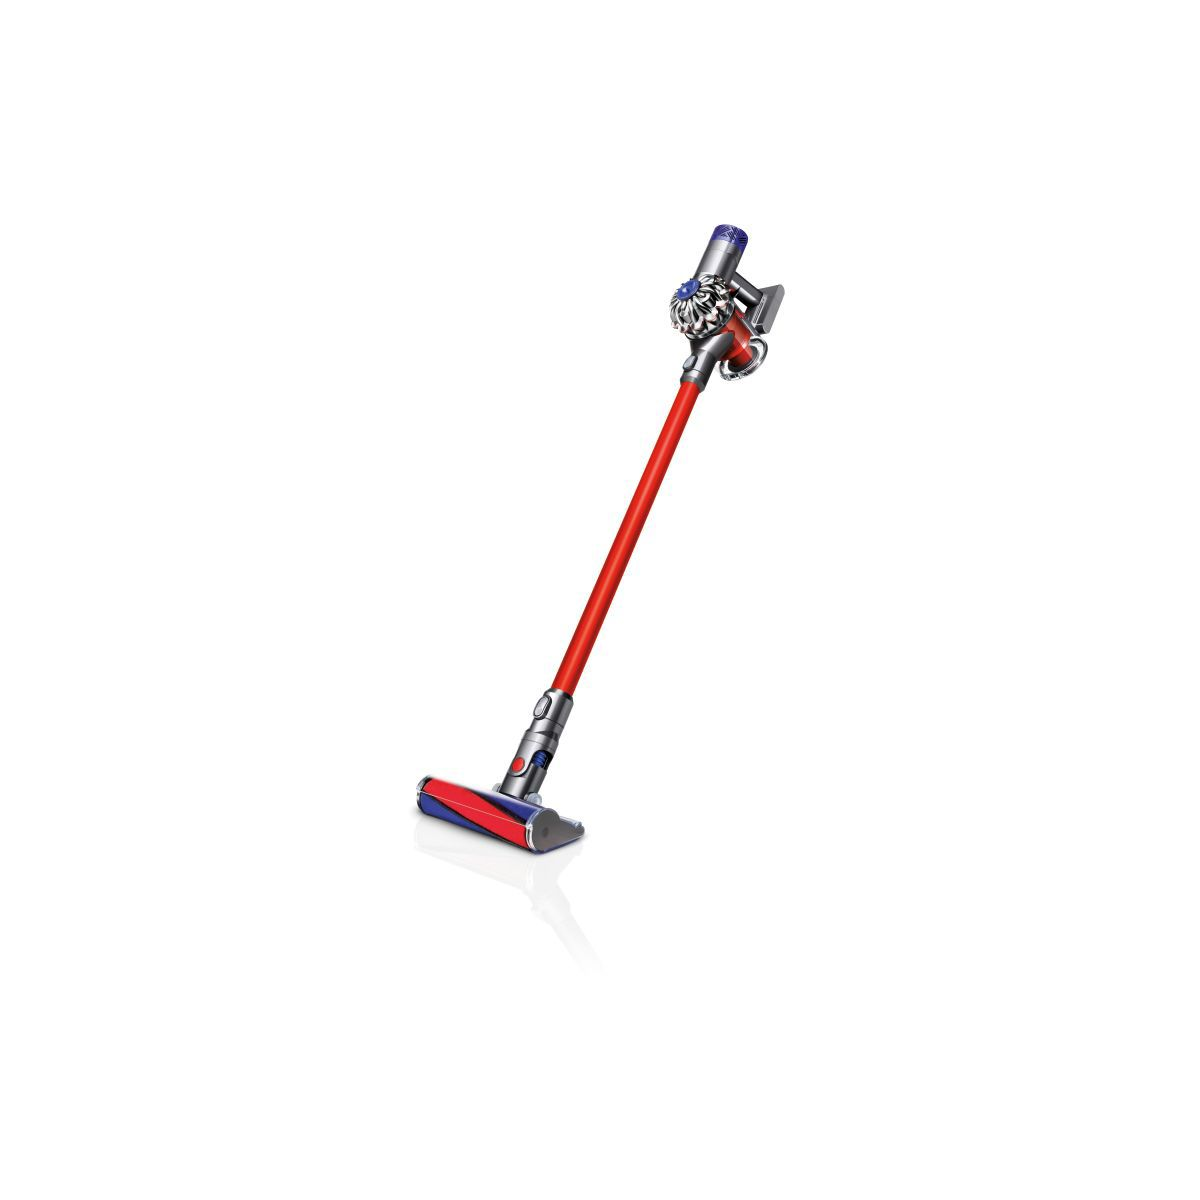 dyson v6 total clean aspirateur main sans sac comparer avec. Black Bedroom Furniture Sets. Home Design Ideas